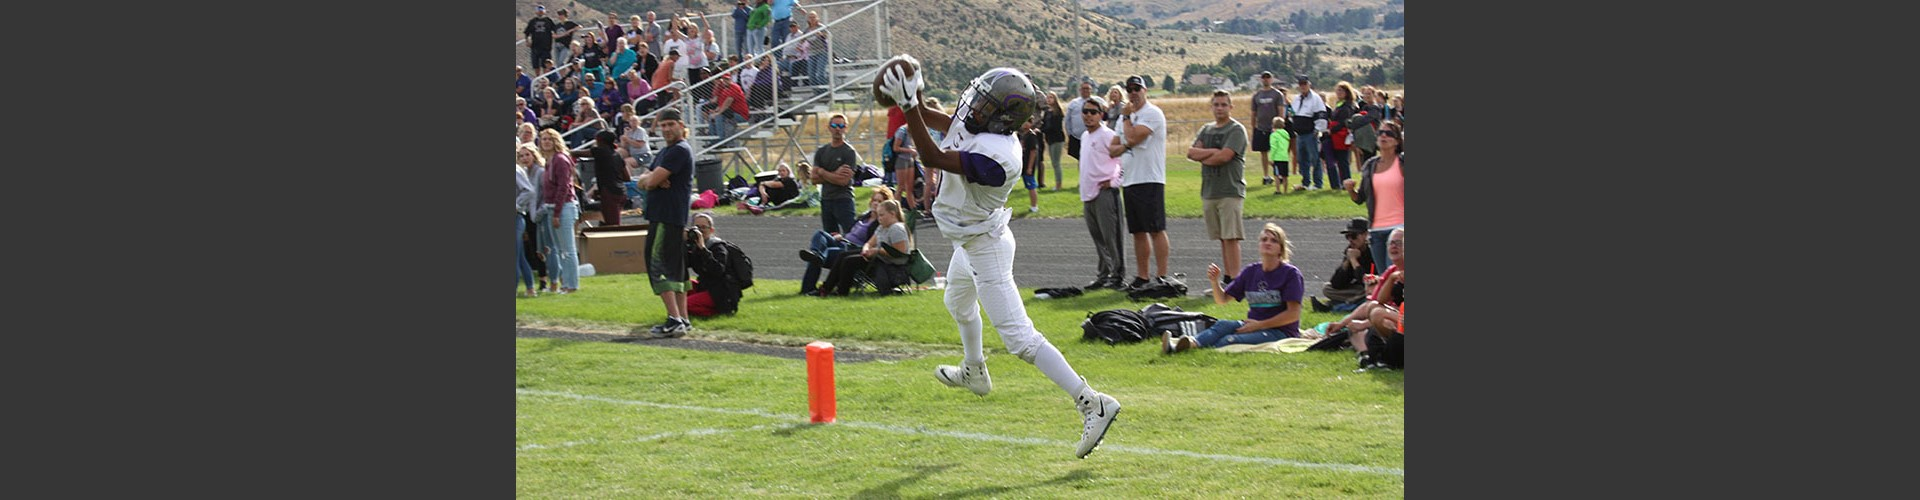 Student athlete catching football during a football game.